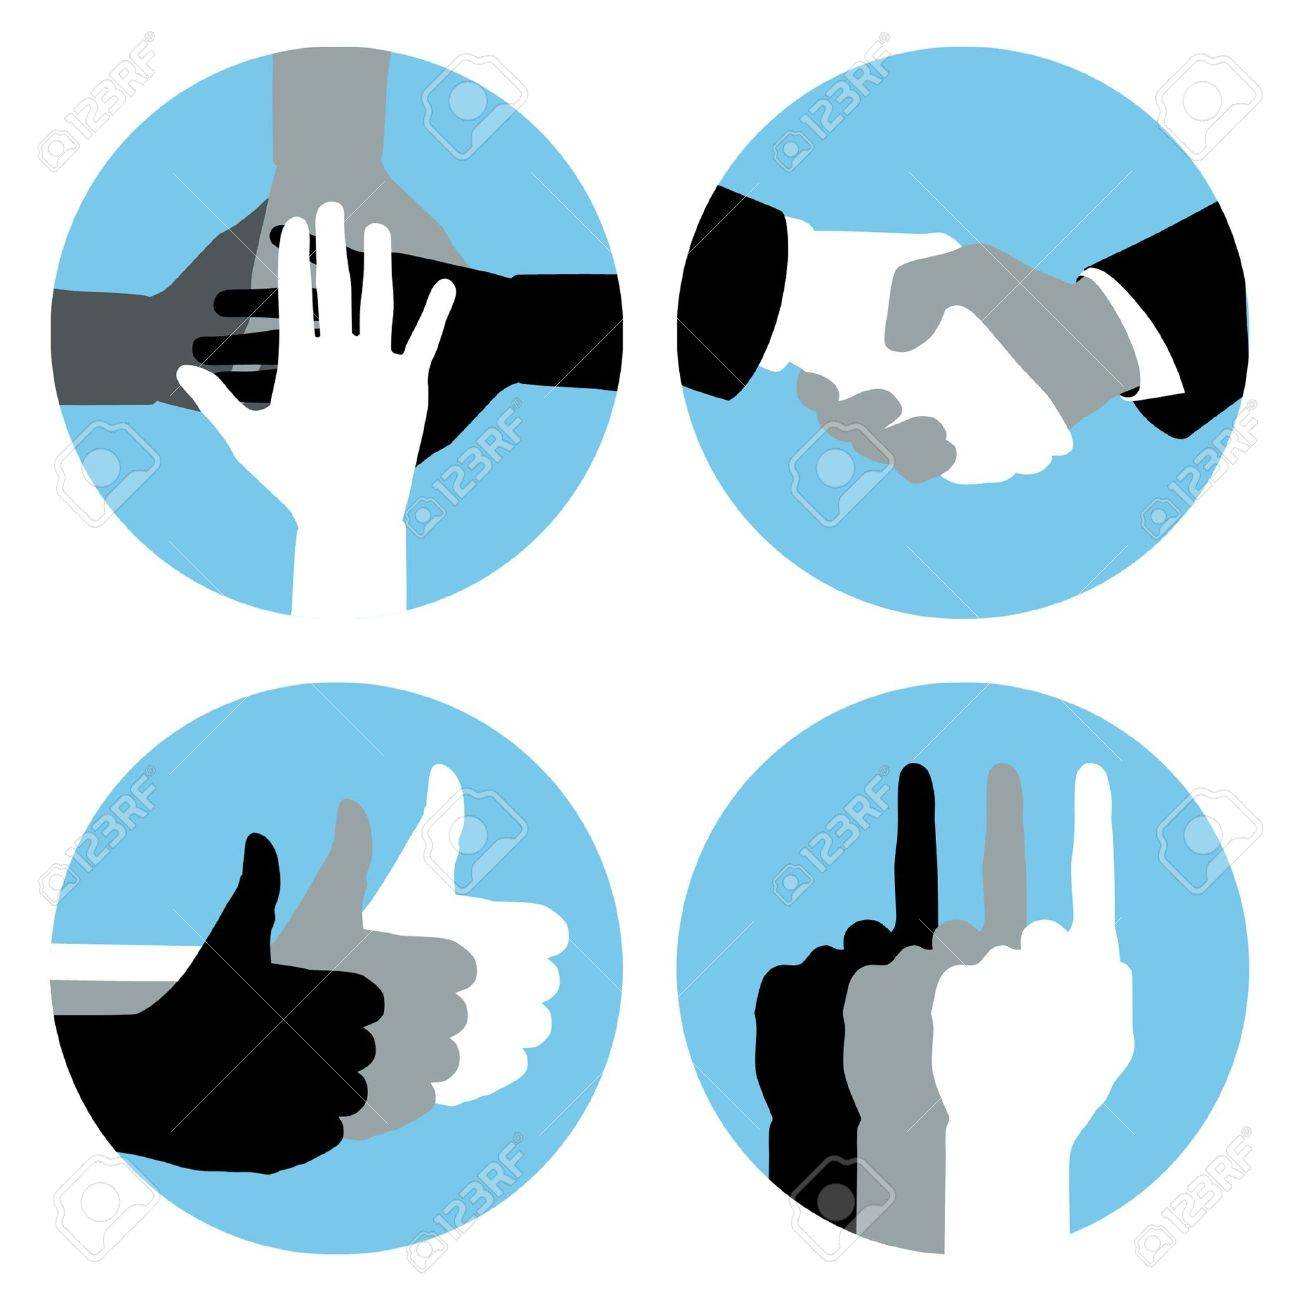 Business hand symbols in blue circles. - 10460941